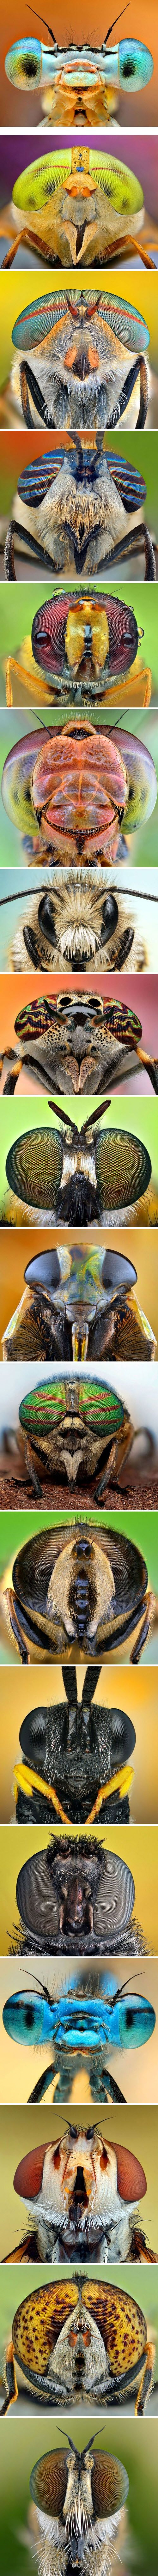 The amazing eyes of dragonflies, bees and flies in macro by Ireneusz Irass Walędzik (Poland, b.1984)